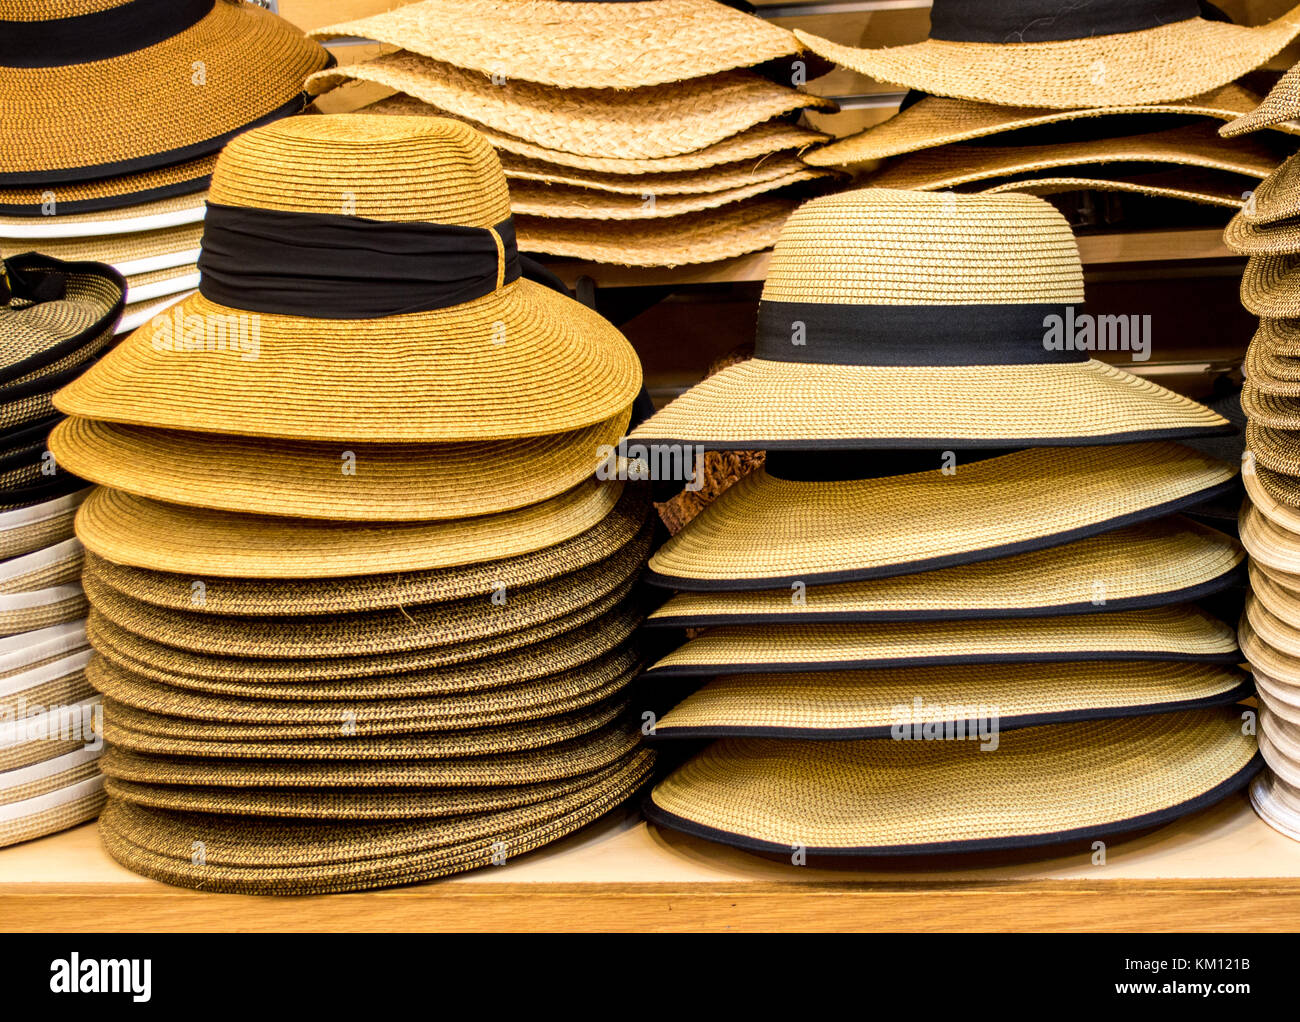 b0e60906785c81 rows of colorful sun hats and Panama hats stacked on shelves in a hat shop -